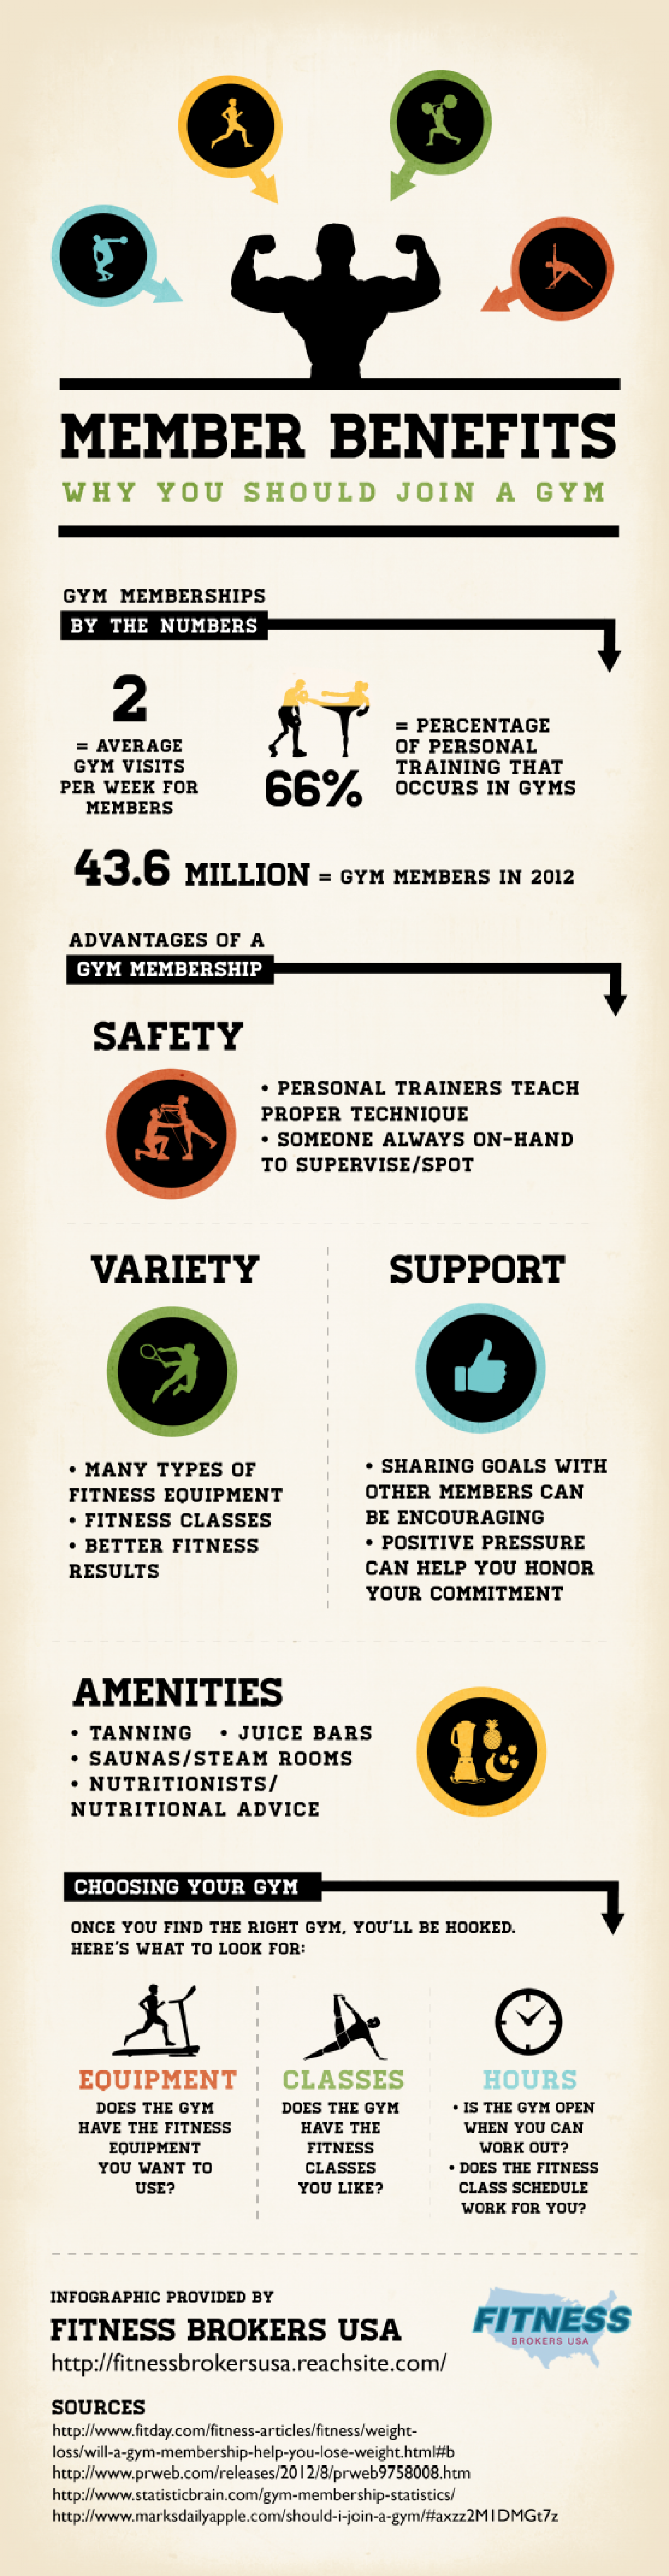 Why You Should Join A Gym Infographic